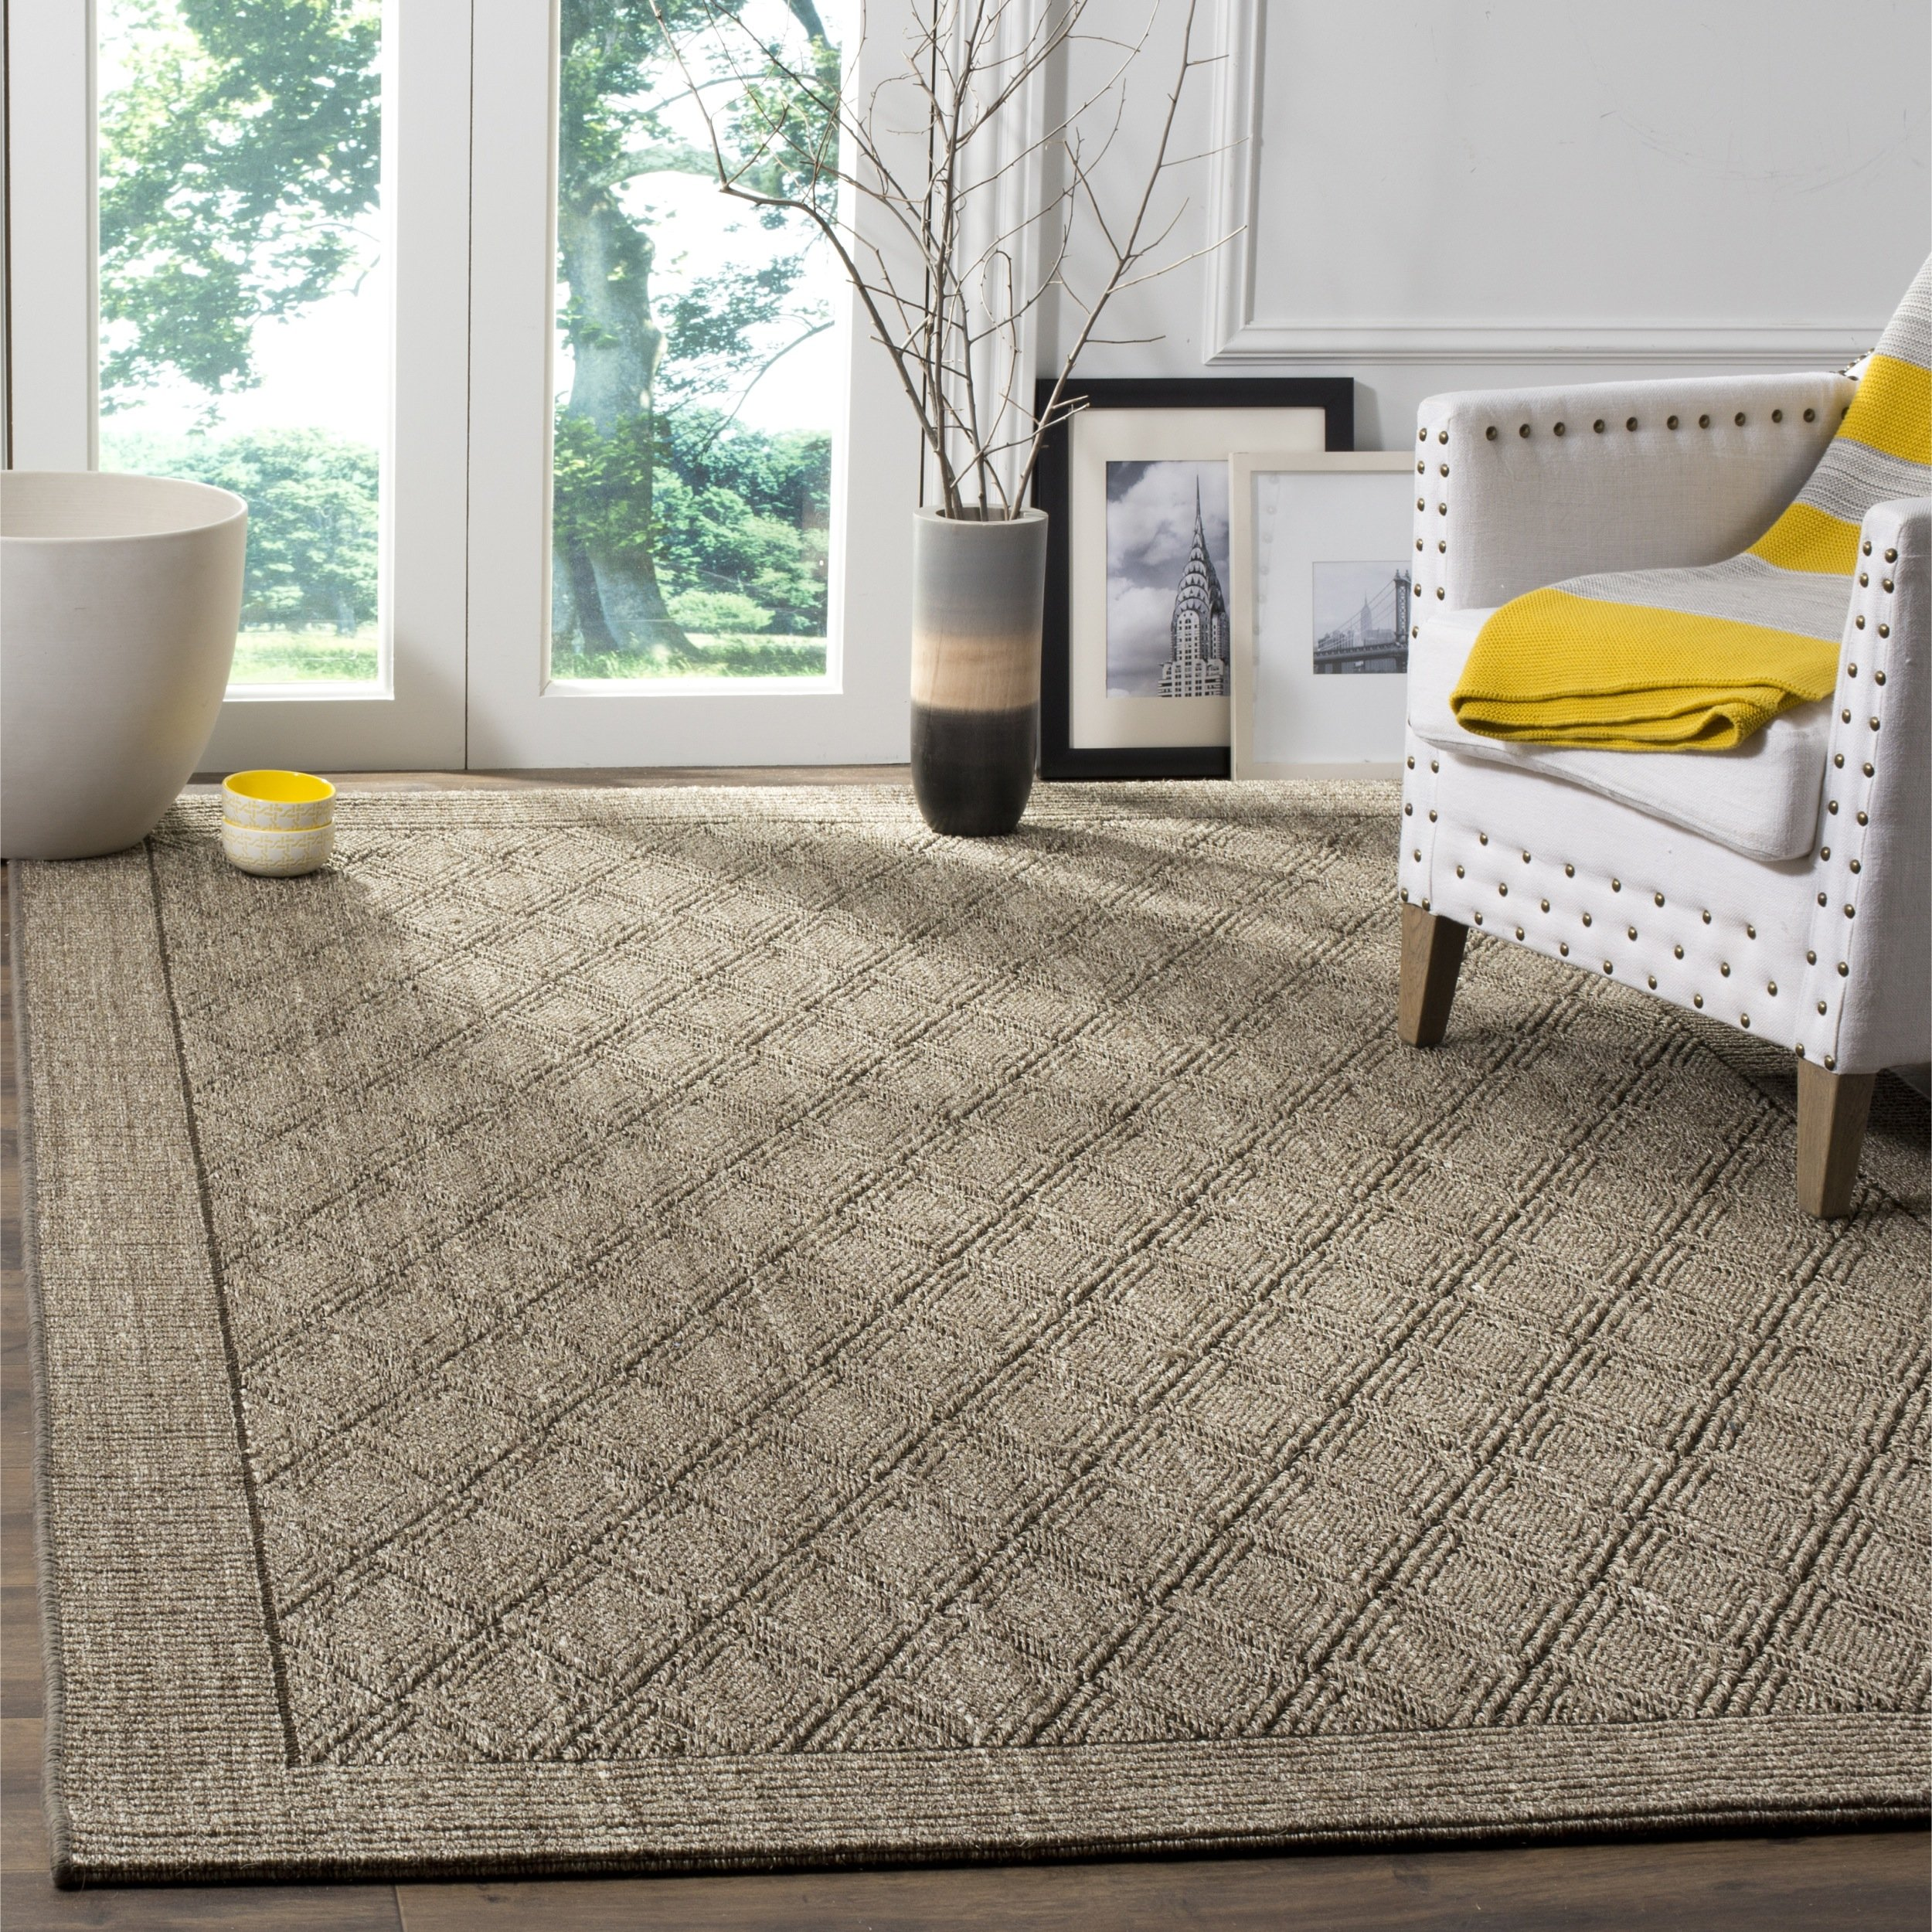 Safavieh Palm Beach Collection PAB351D Silver Sisal & Jute Area Rug (8' x 11') by Safavieh